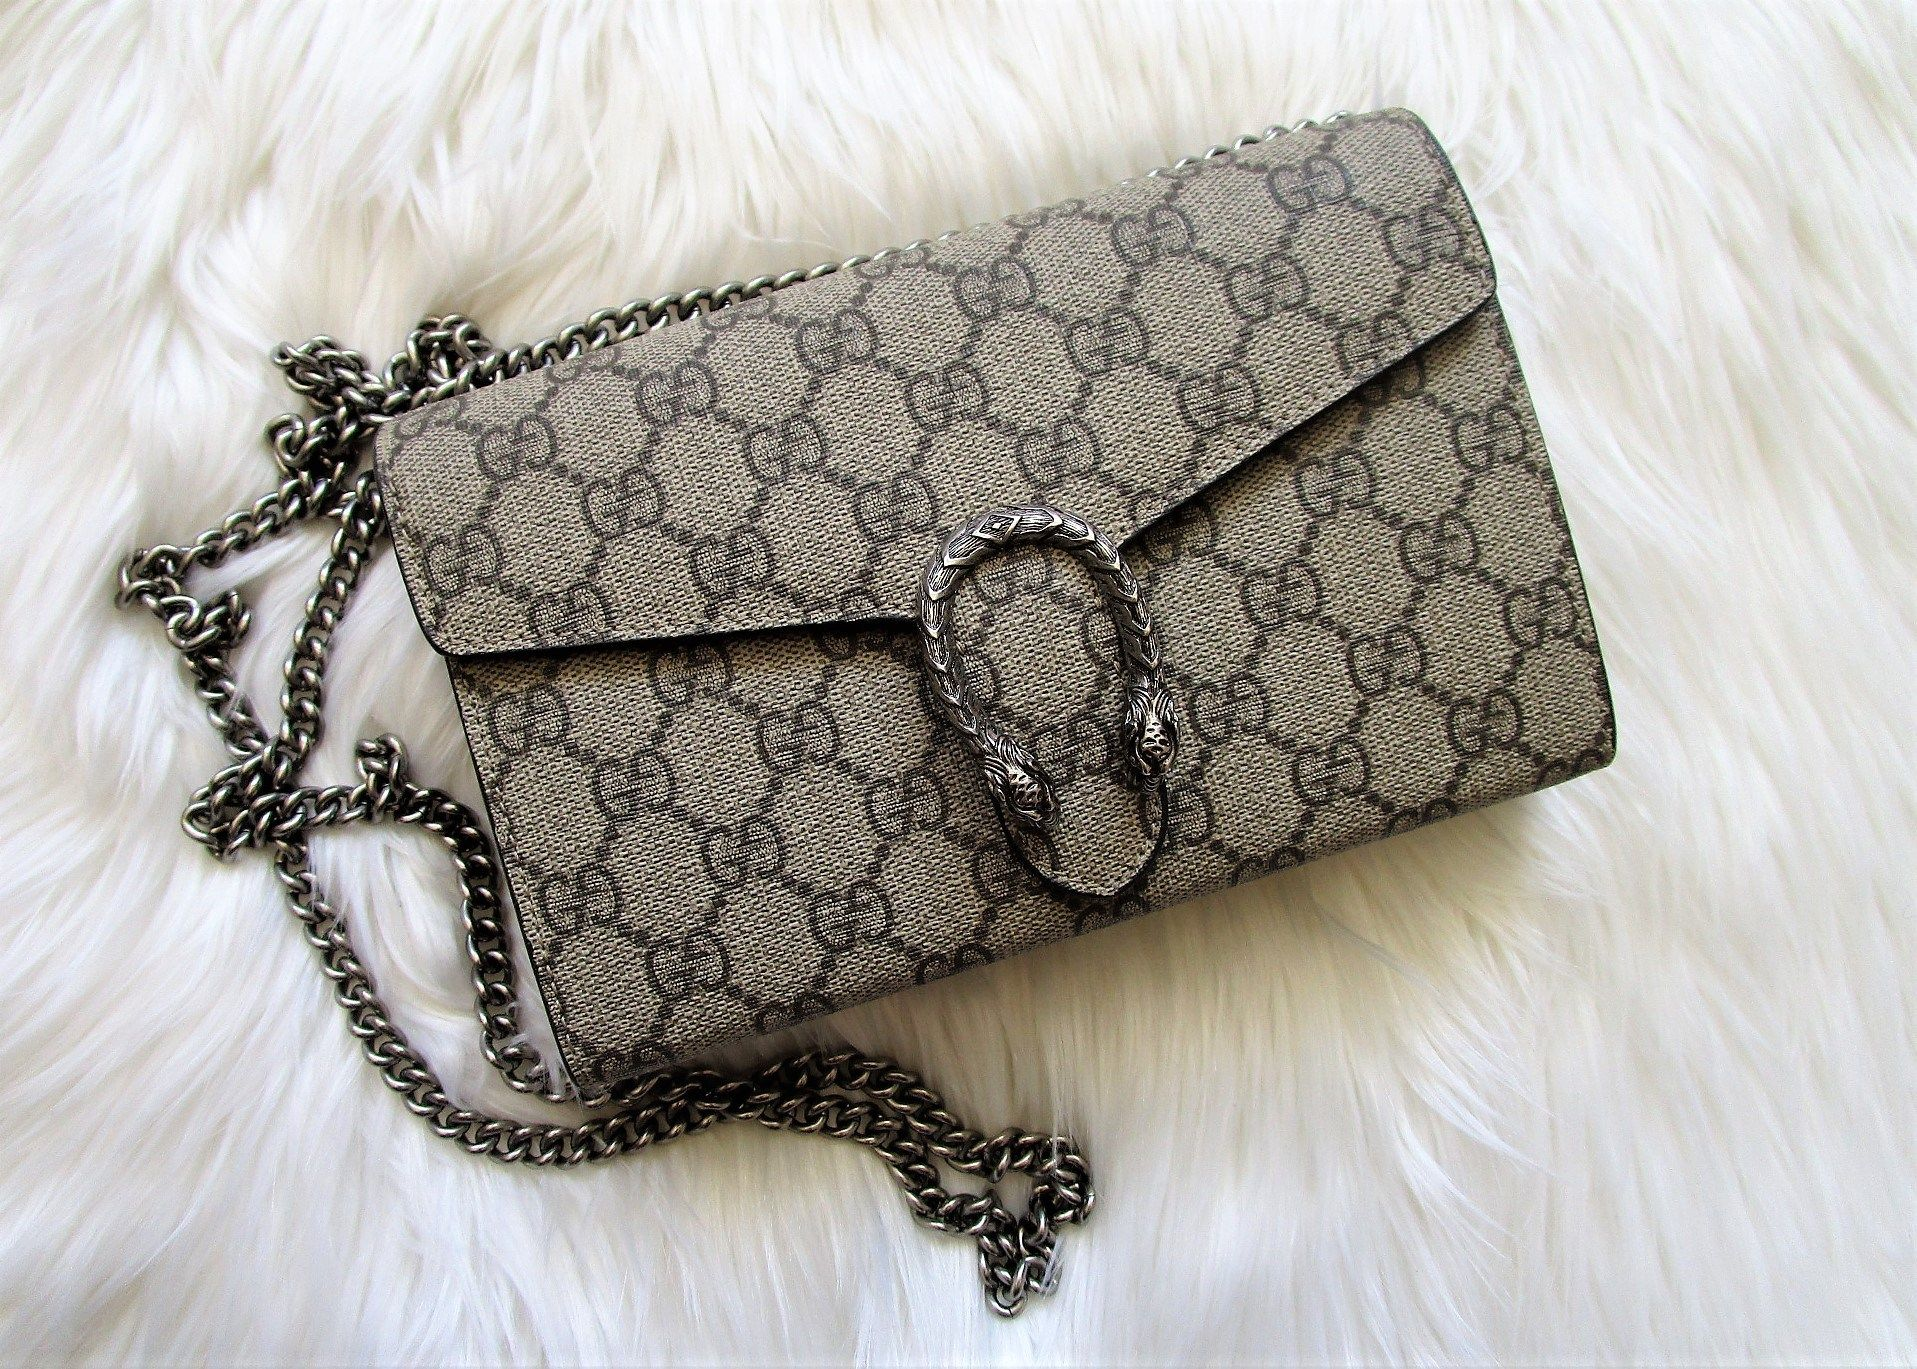 7a5f01bef Reviewed by Emm: Gucci Dionysus Wallet on Chain (WOC) – Styled by Emm